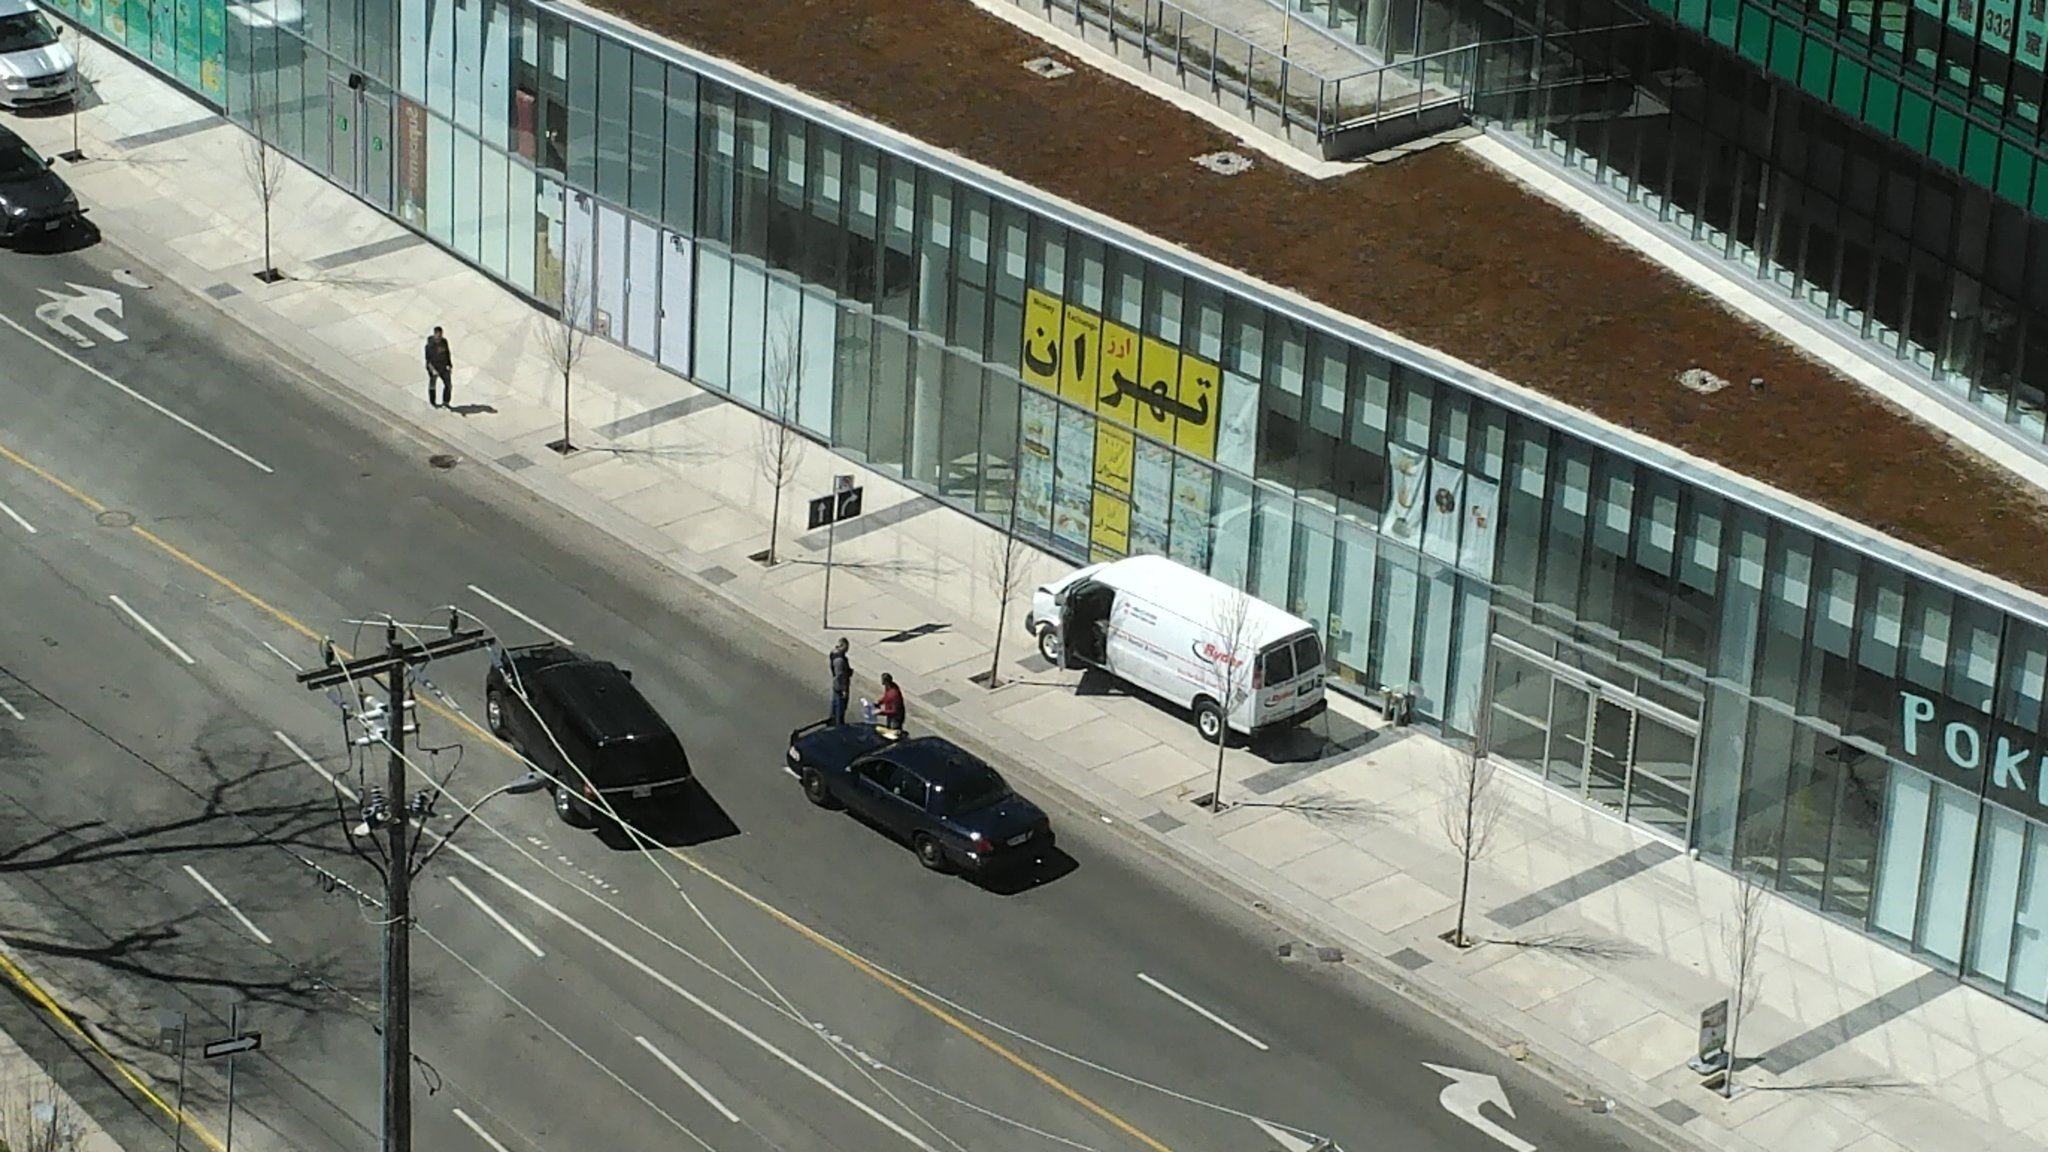 Van strikes multiple pedestrians in Toronto, police say